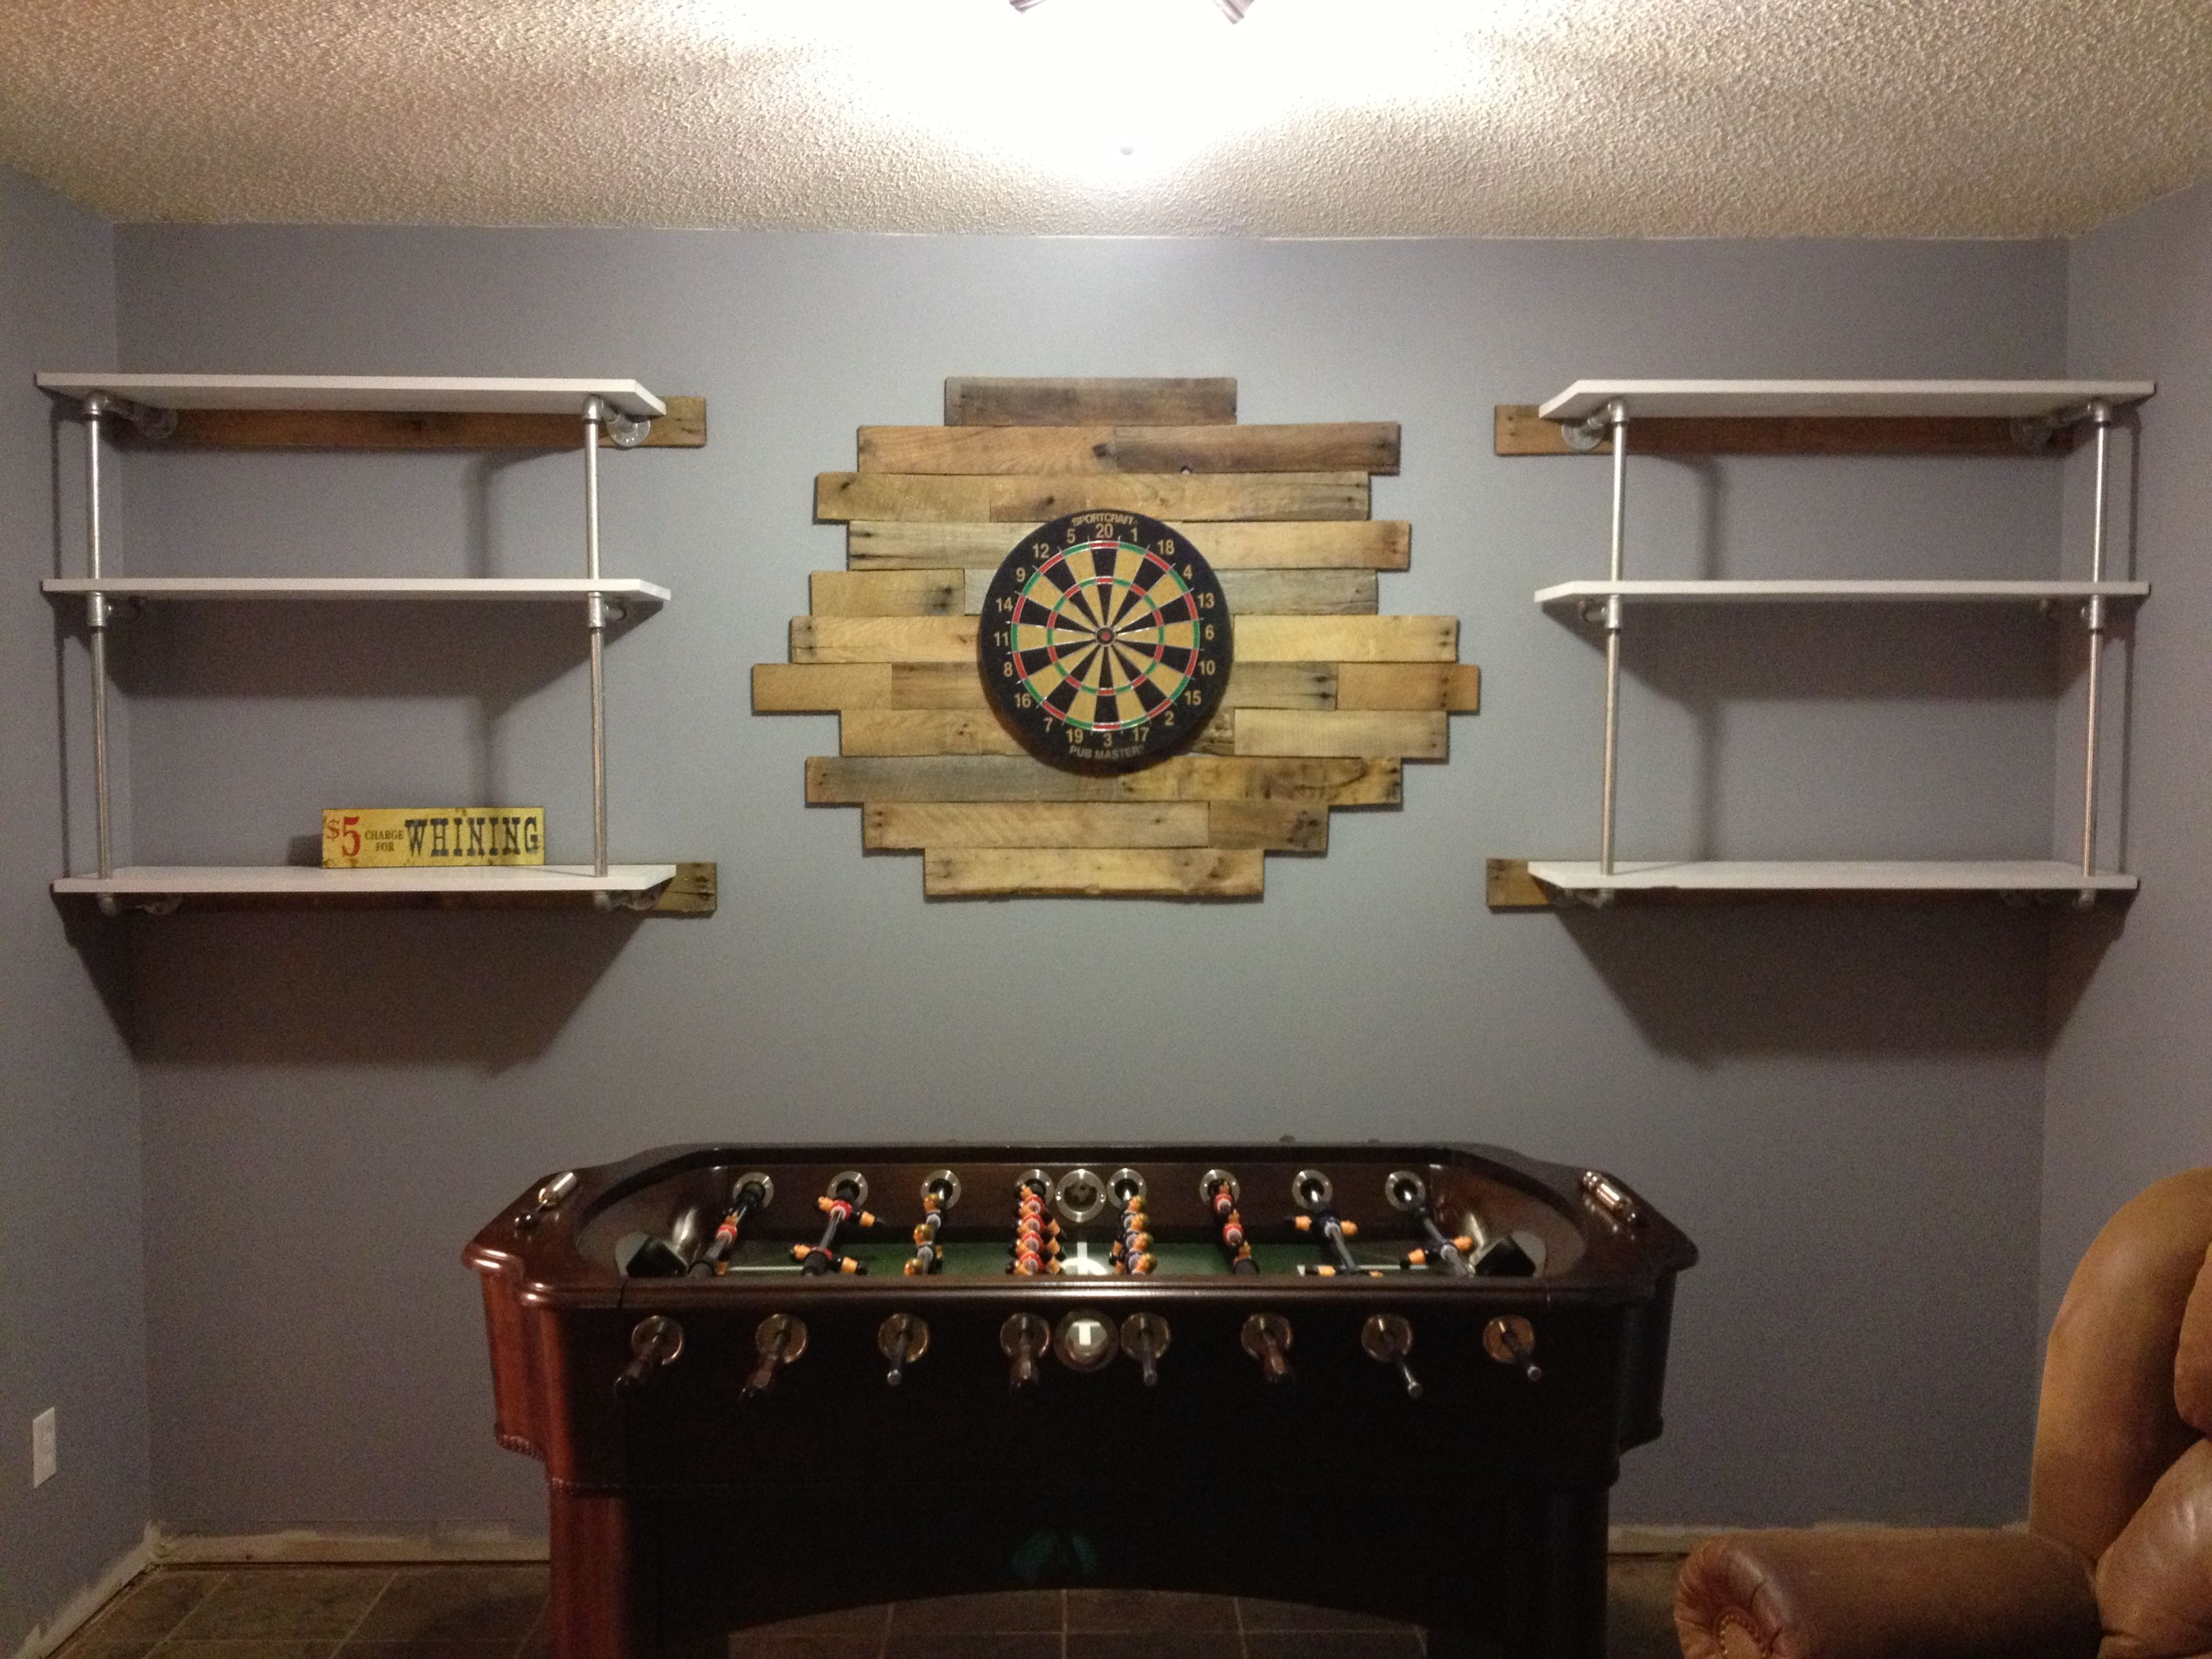 Baby Foot De Salon pallet board surround for the dart board. i love how this